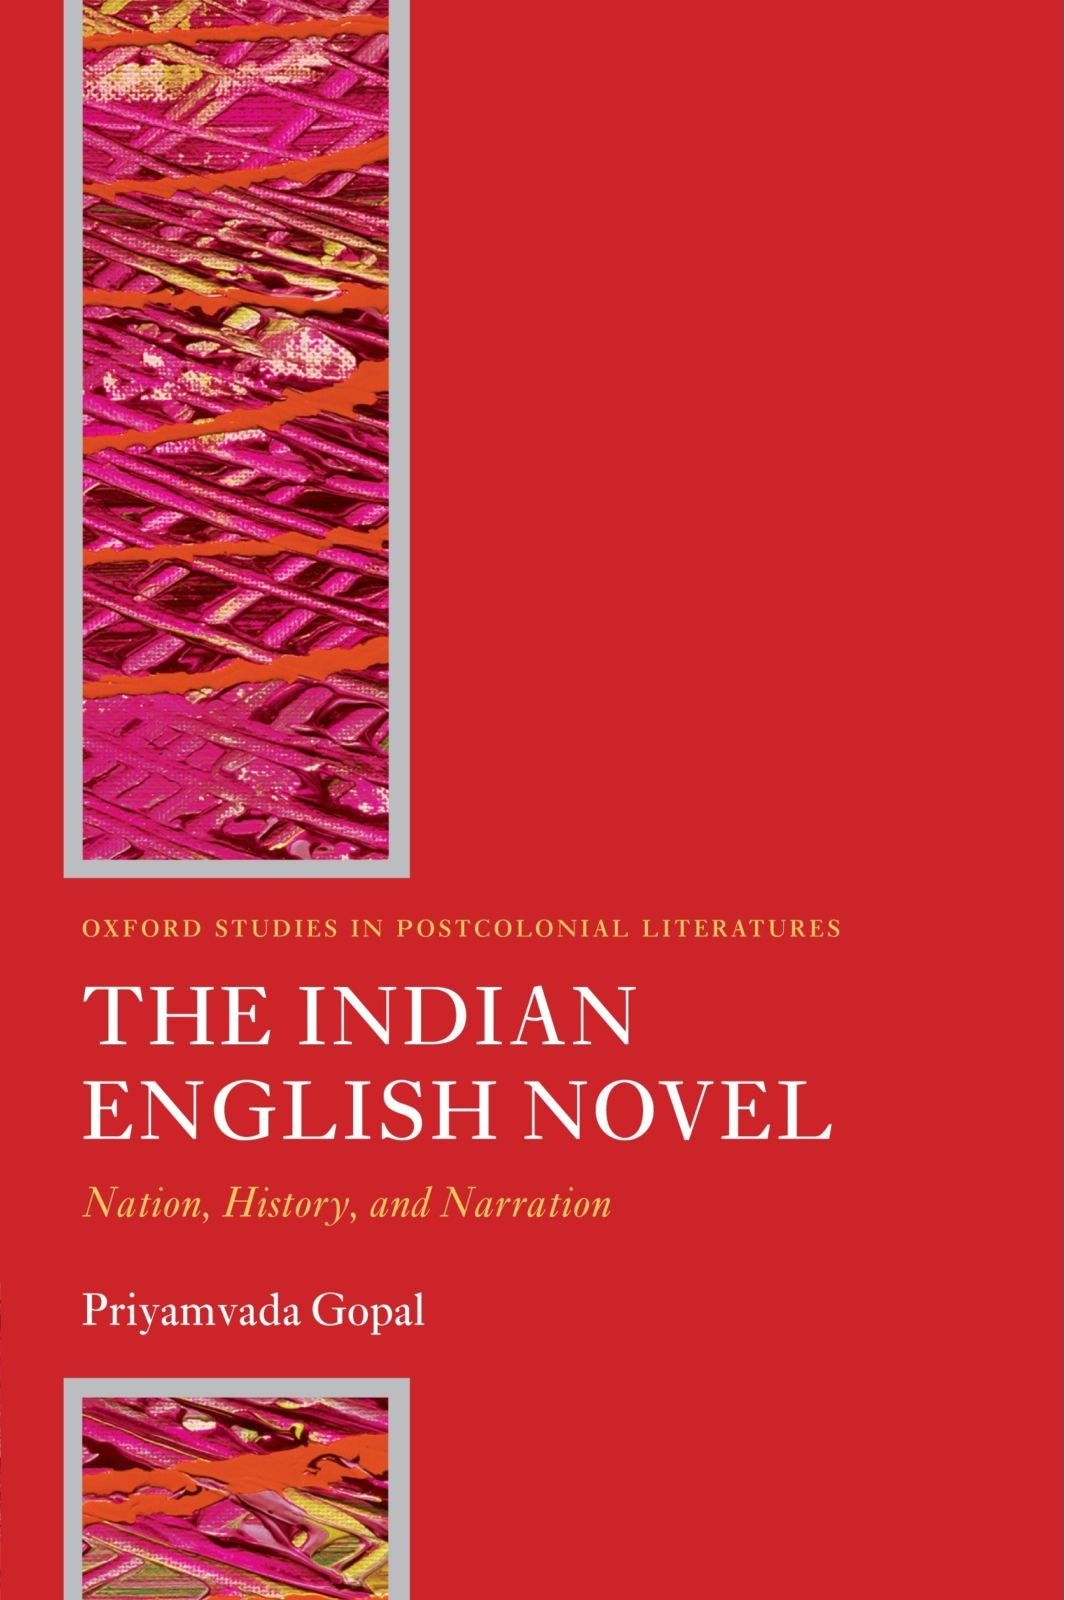 The Indian English Novel: Nation History and Narration (Oxford Studies in Postcolonial Literatures)